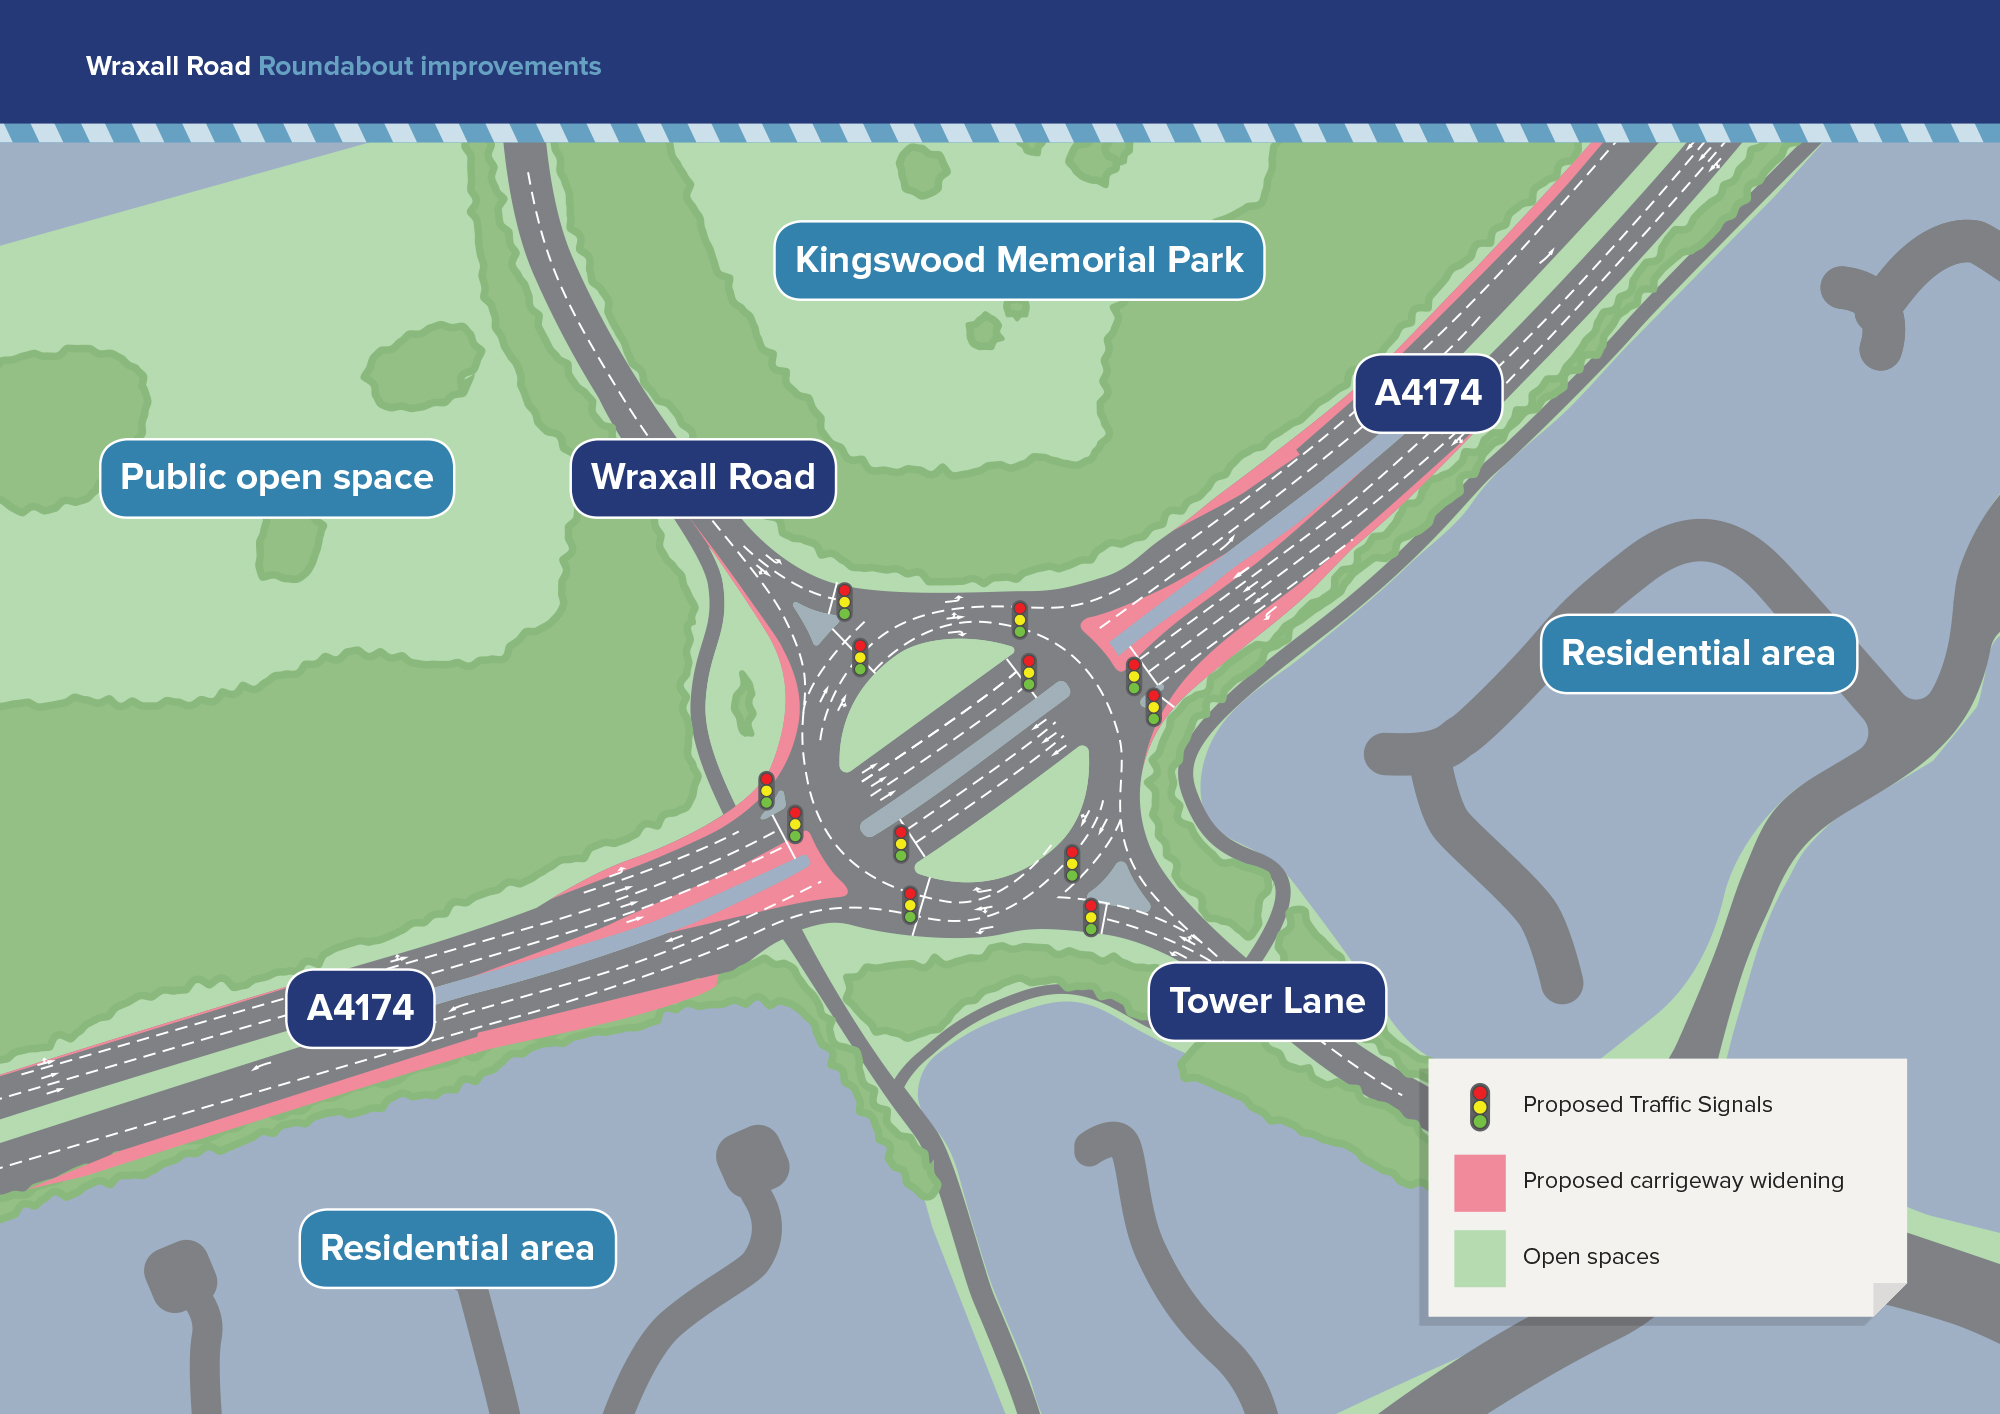 Map illustrating Wraxhall Road roundabout improvements including proposed traffic signals, carriageway widening and open spaces.